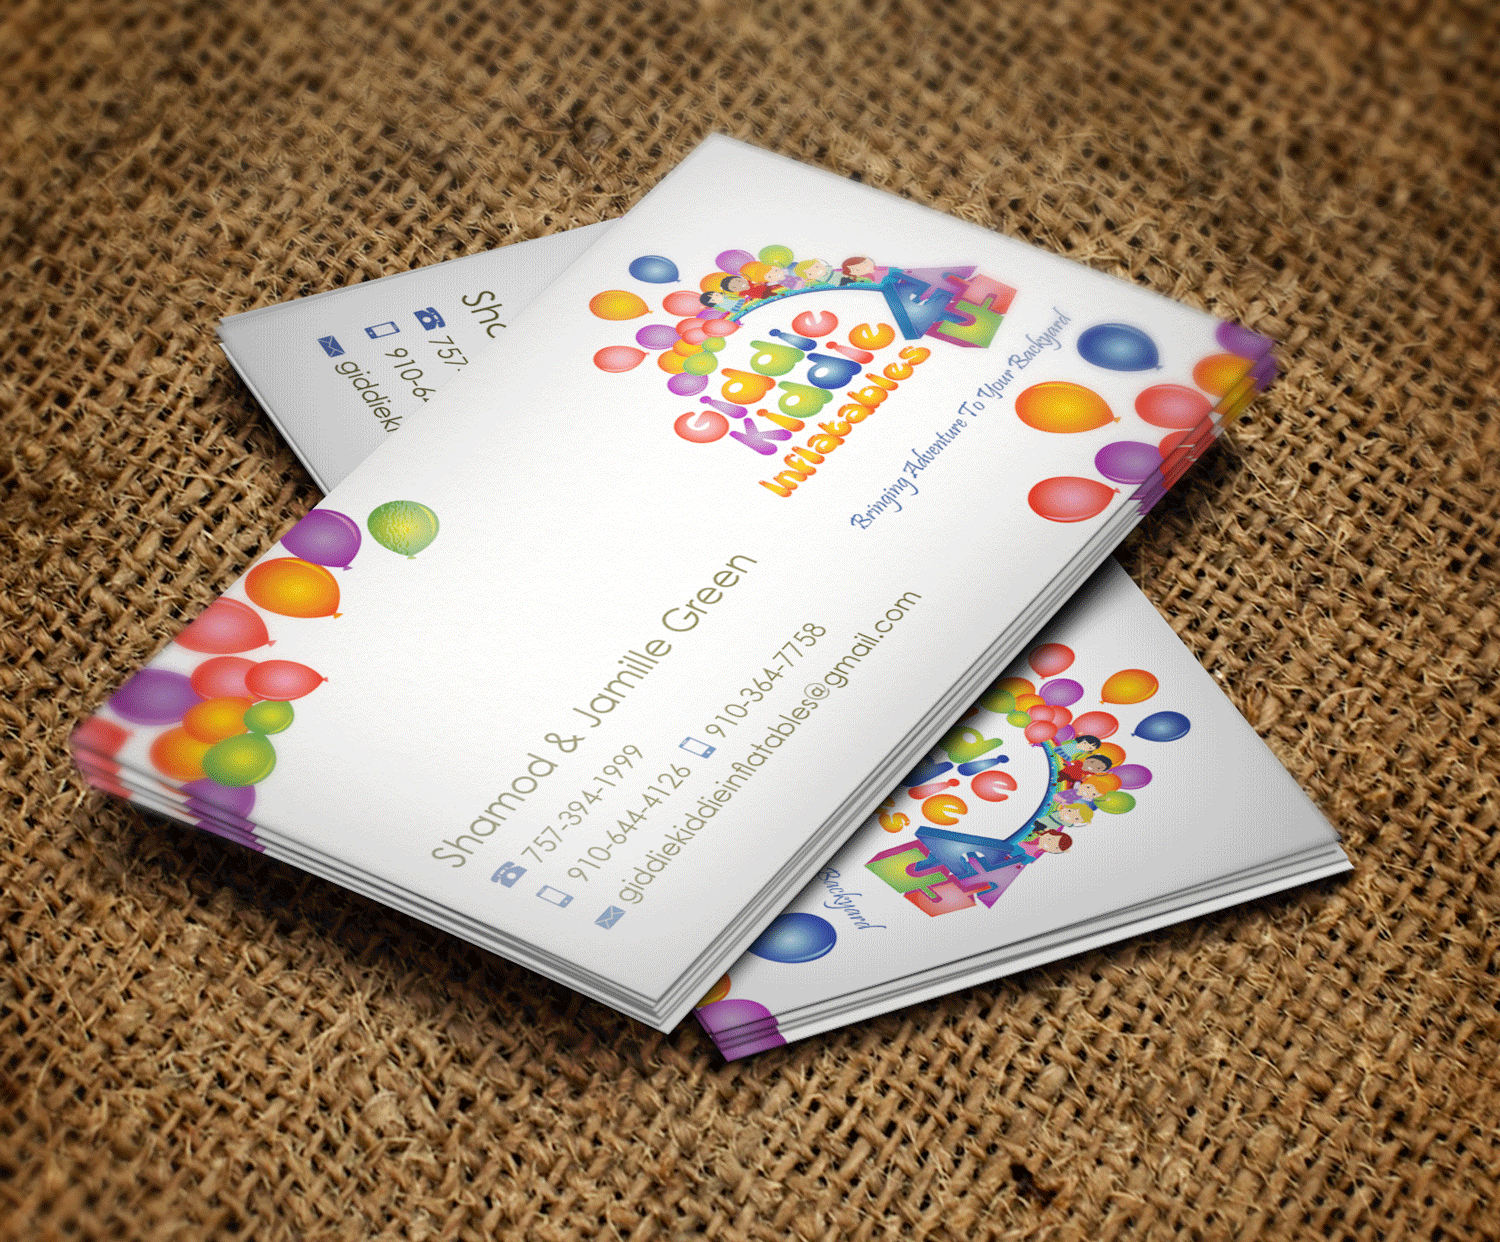 Playful Colorful Party Planning Business Card Design For Giddie Kiddie Inflatables By Riz